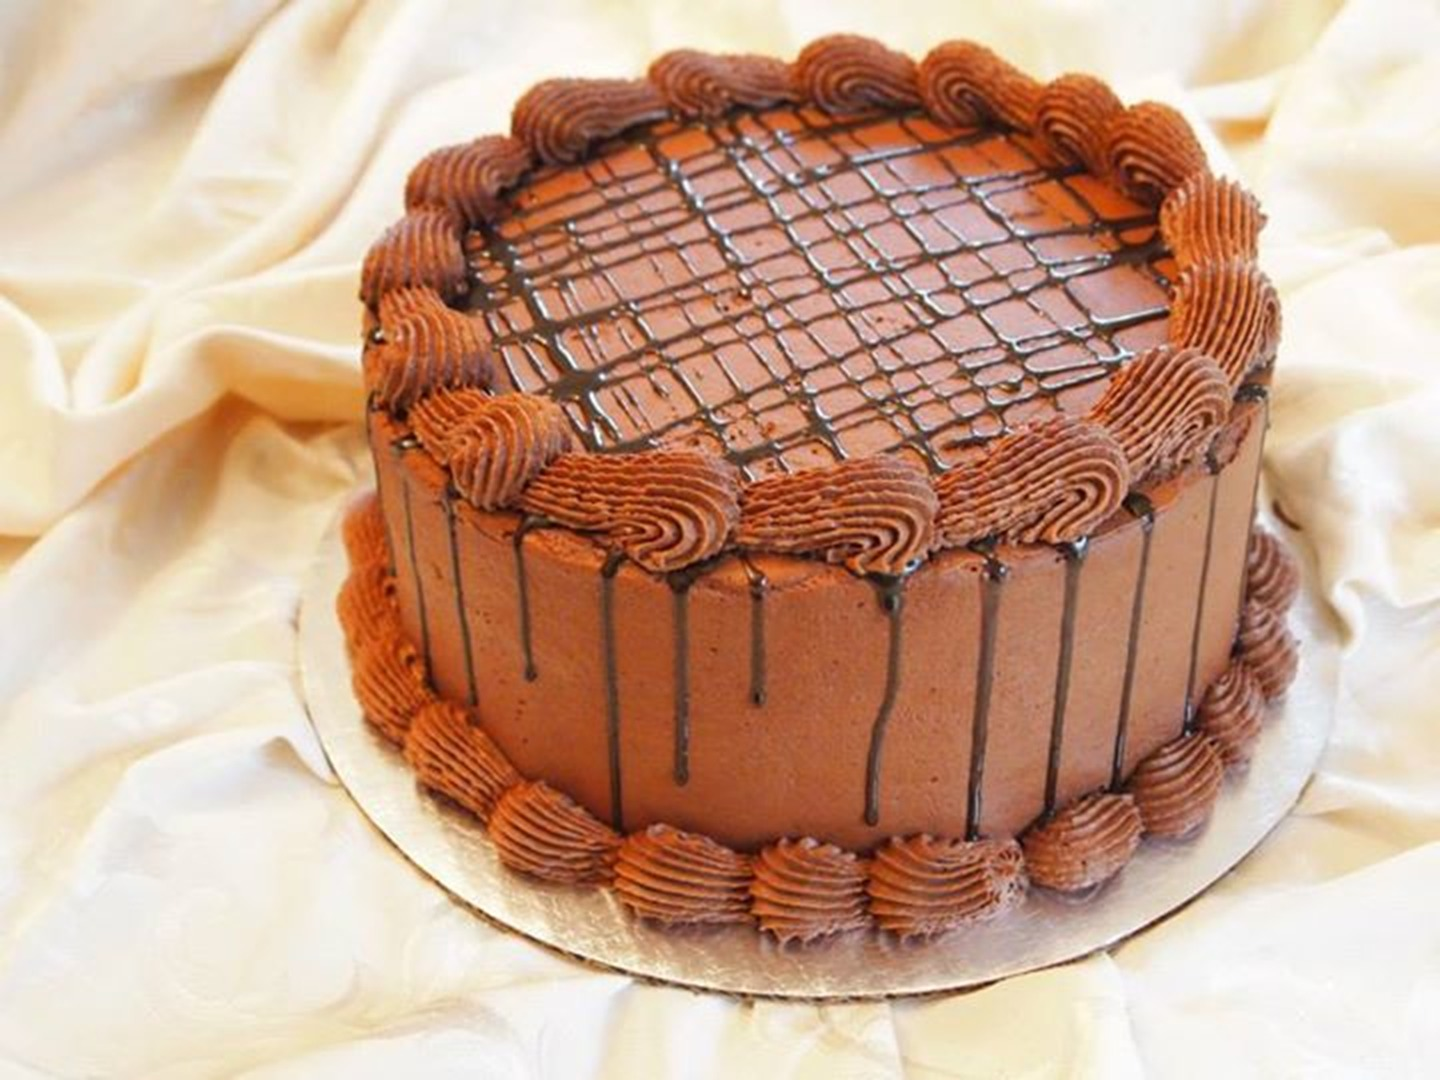 Our Goal Is For You To Have A Great Tasting Cake Thats Looking Too